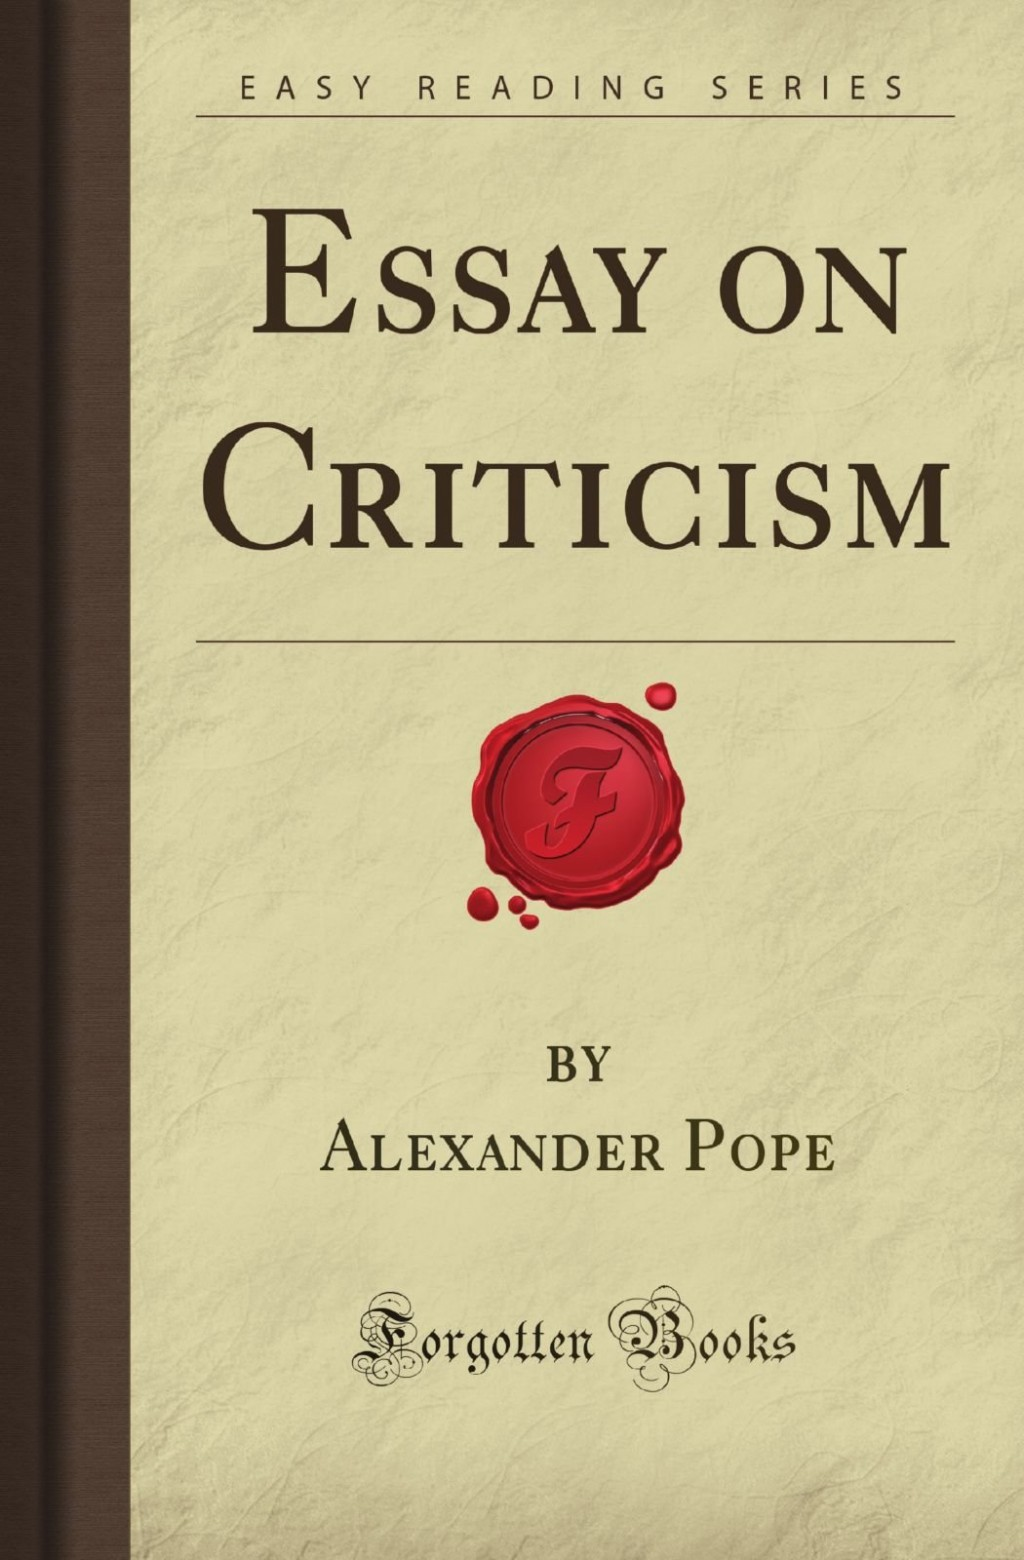 001 An Essay On Criticism Example Sensational Lines 233 To 415 Part 3 Analysis Pdf Large